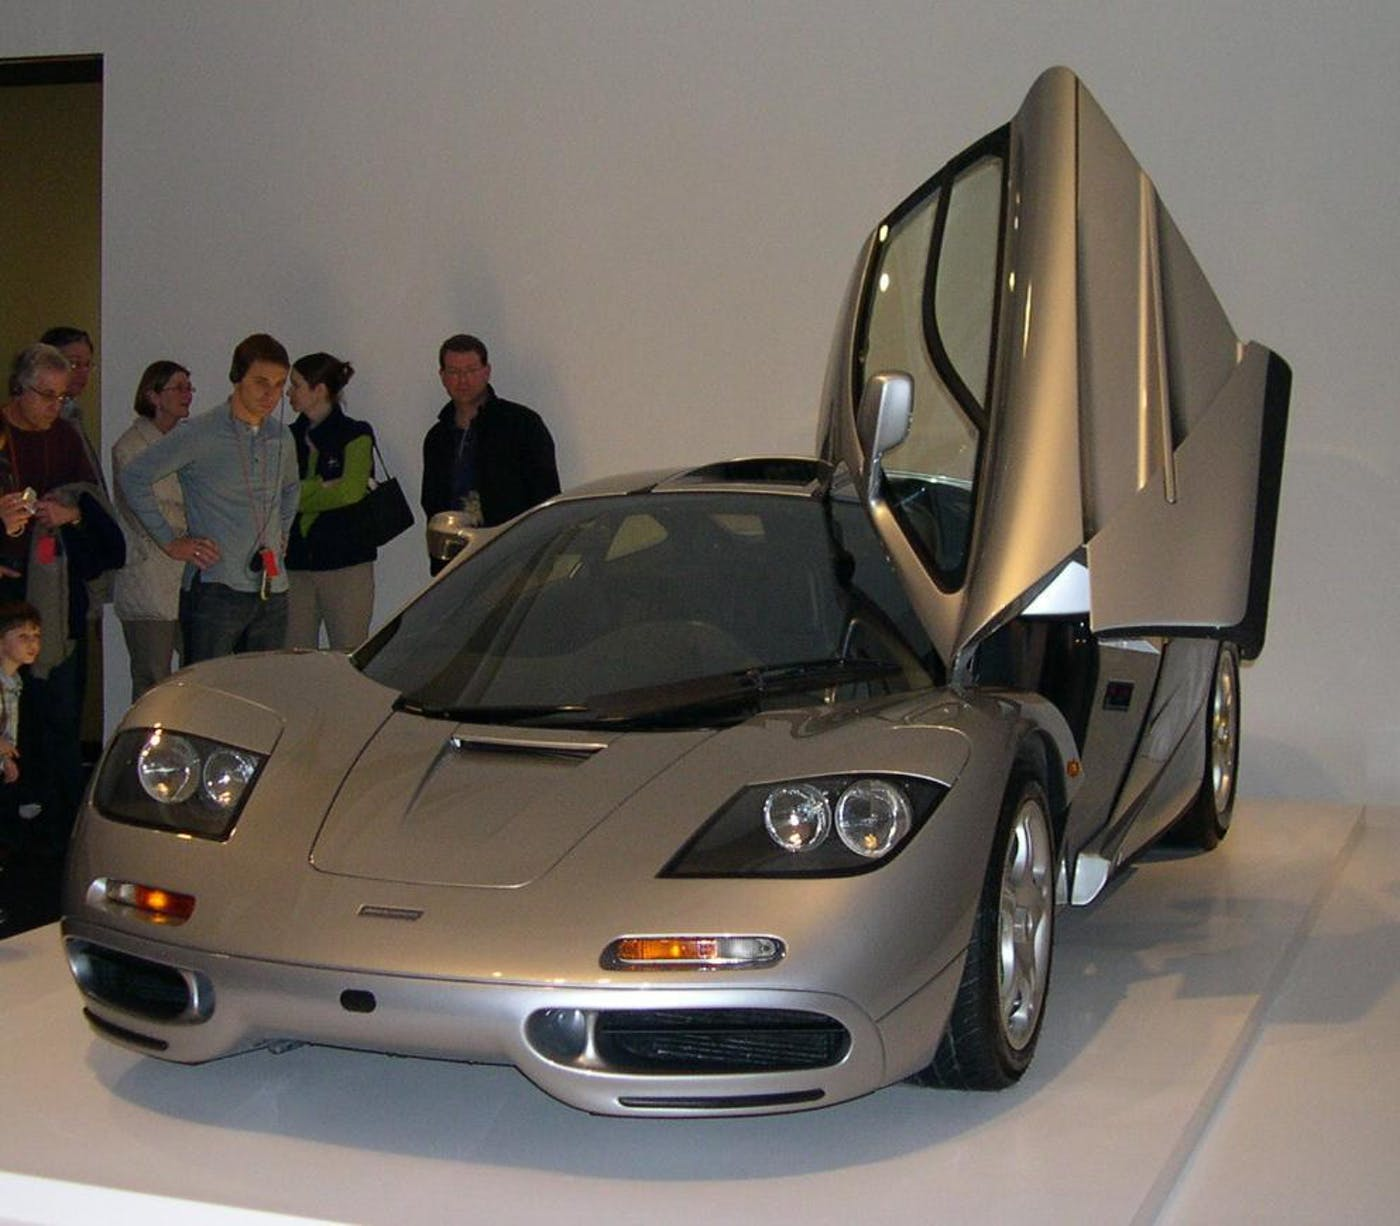 Young Elon Musk Totaled a McLaren F1 Car On a Joyride With Peter